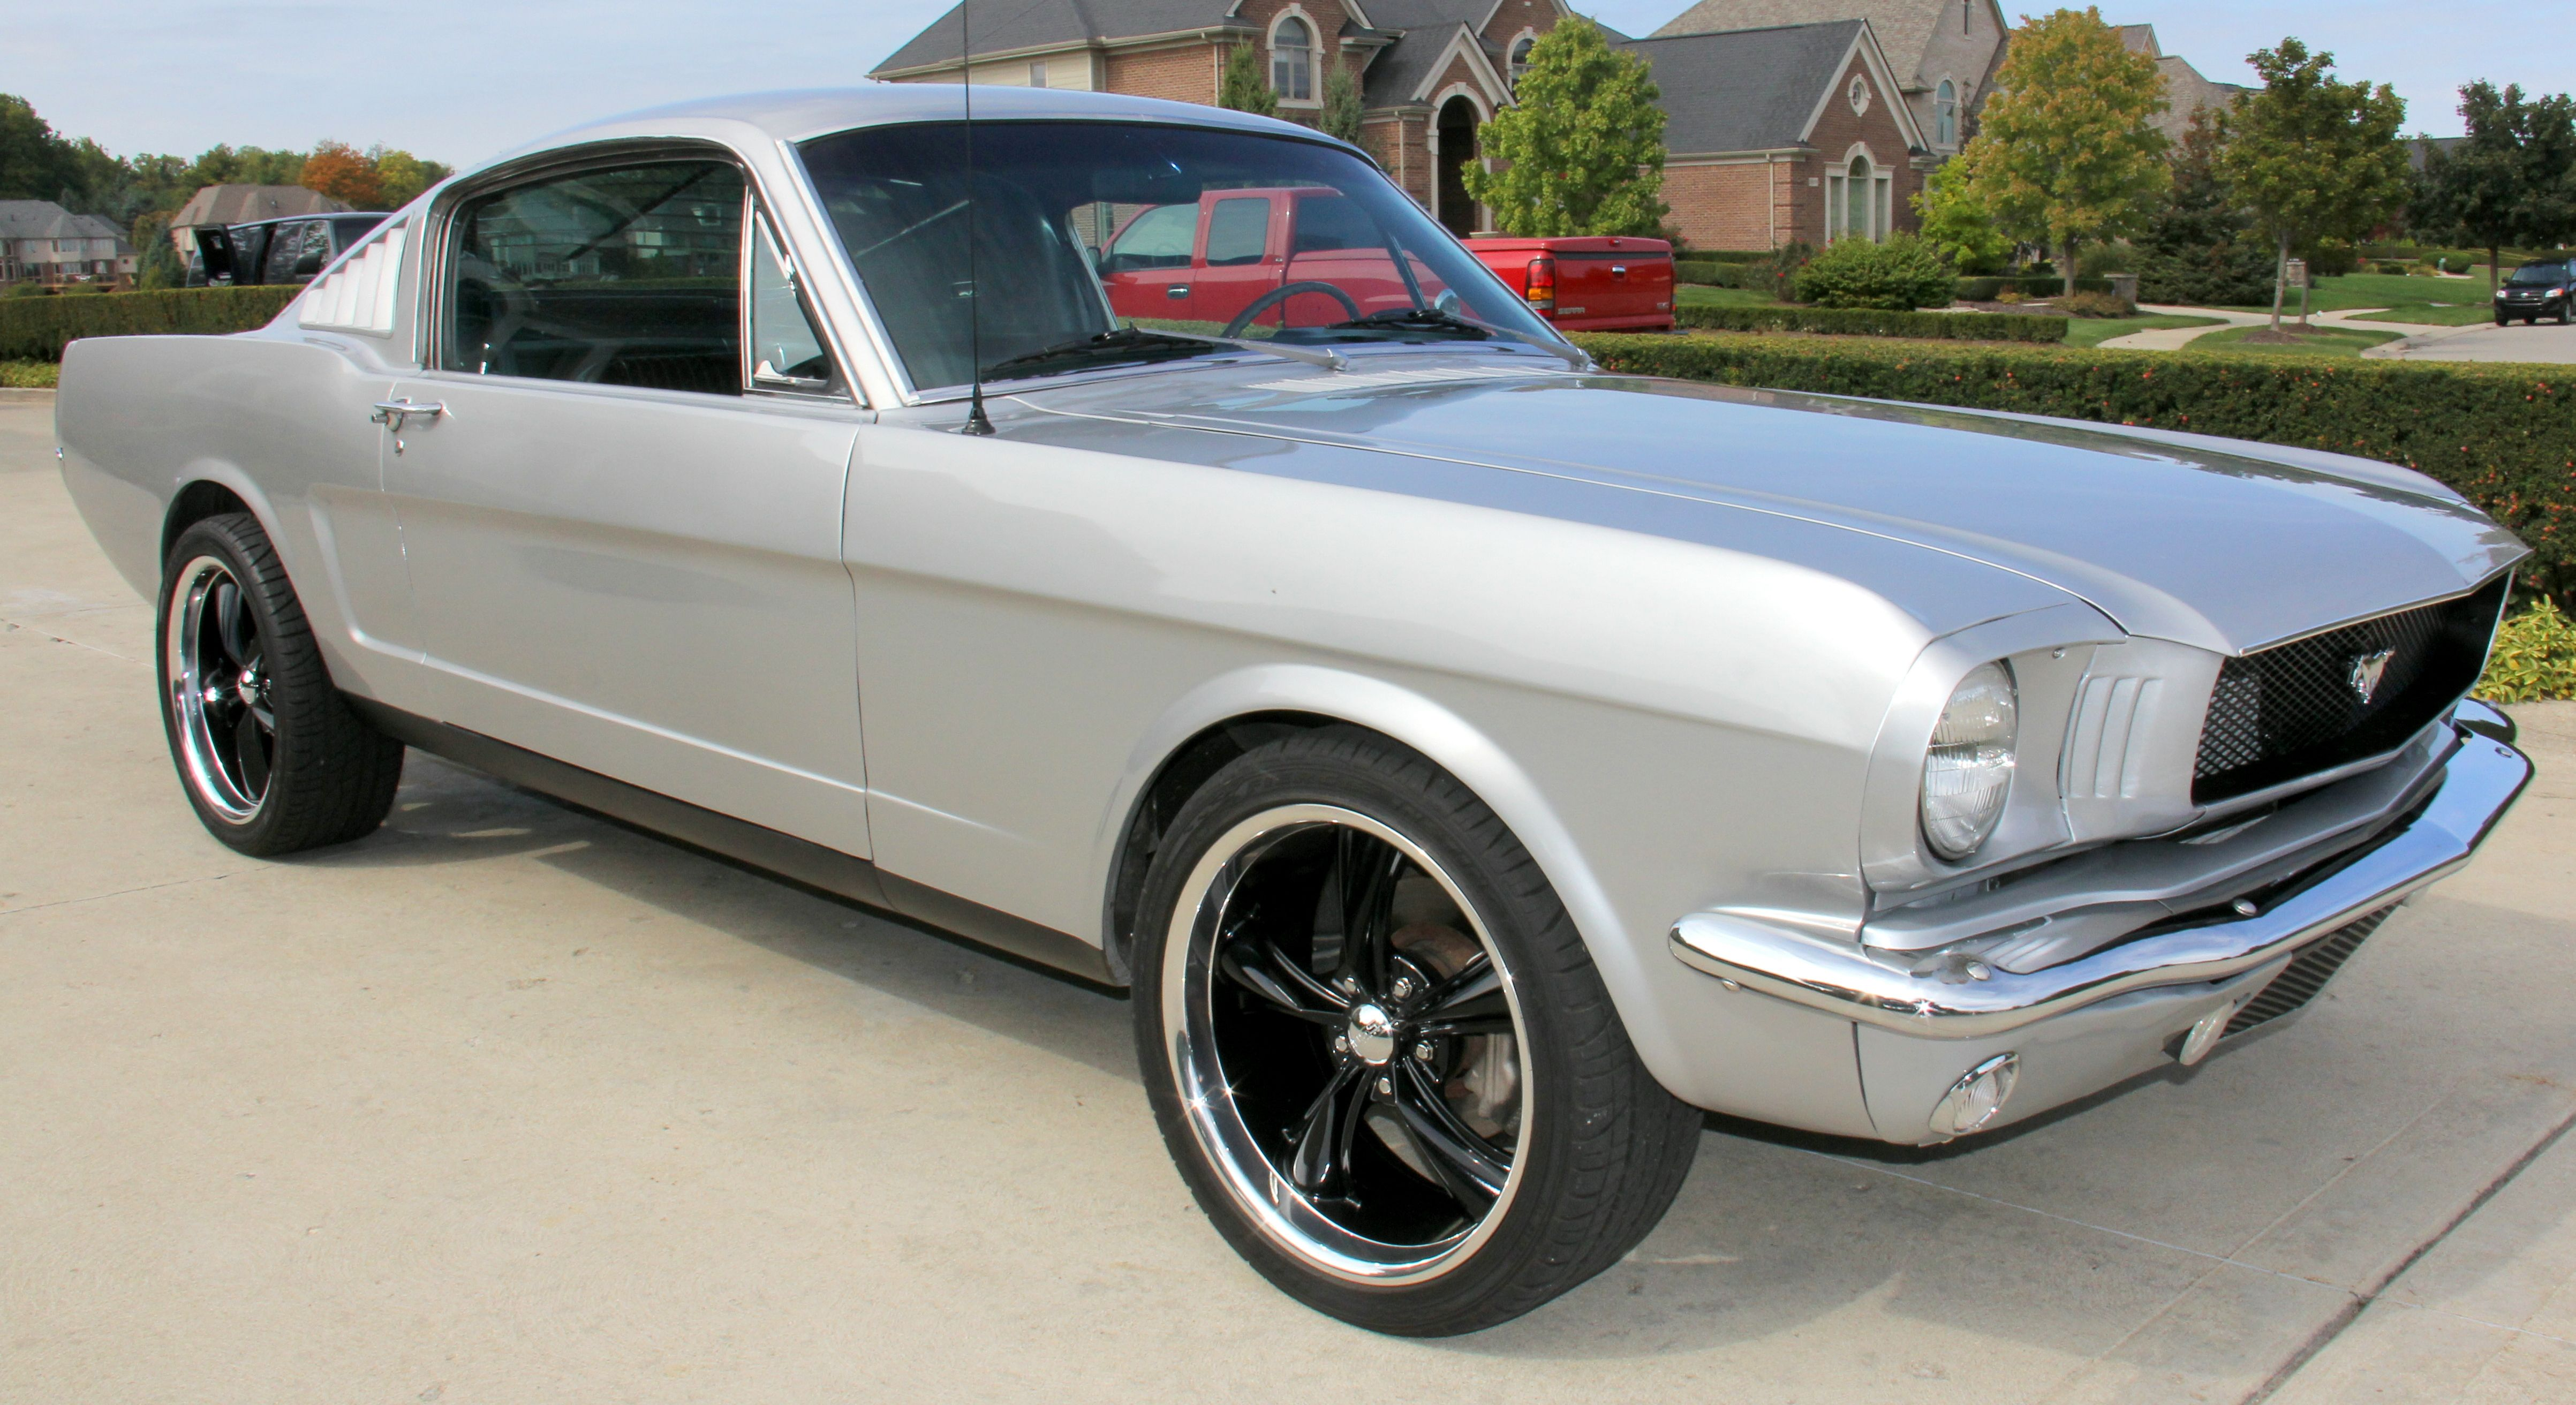 1966 Ford Mustang Fastback – Restomod 1993 Mustang 5 0l Engine T5